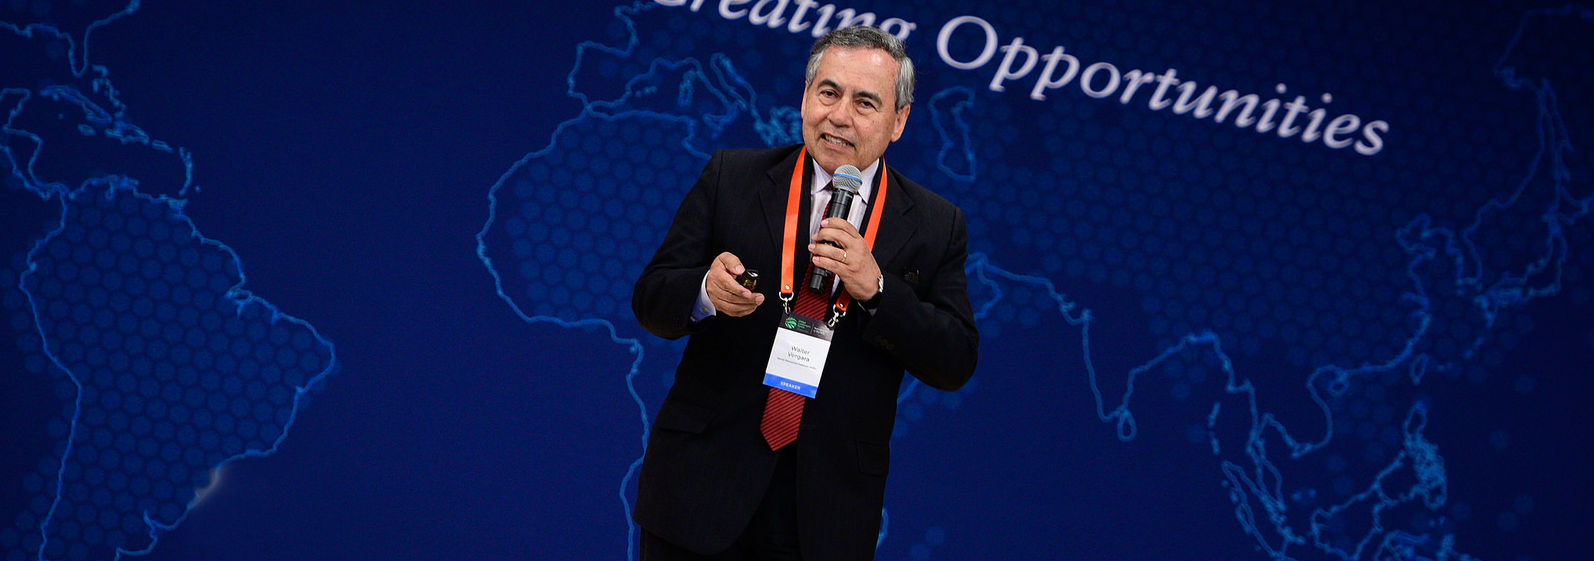 Walter Vergara, WRI senior fellow